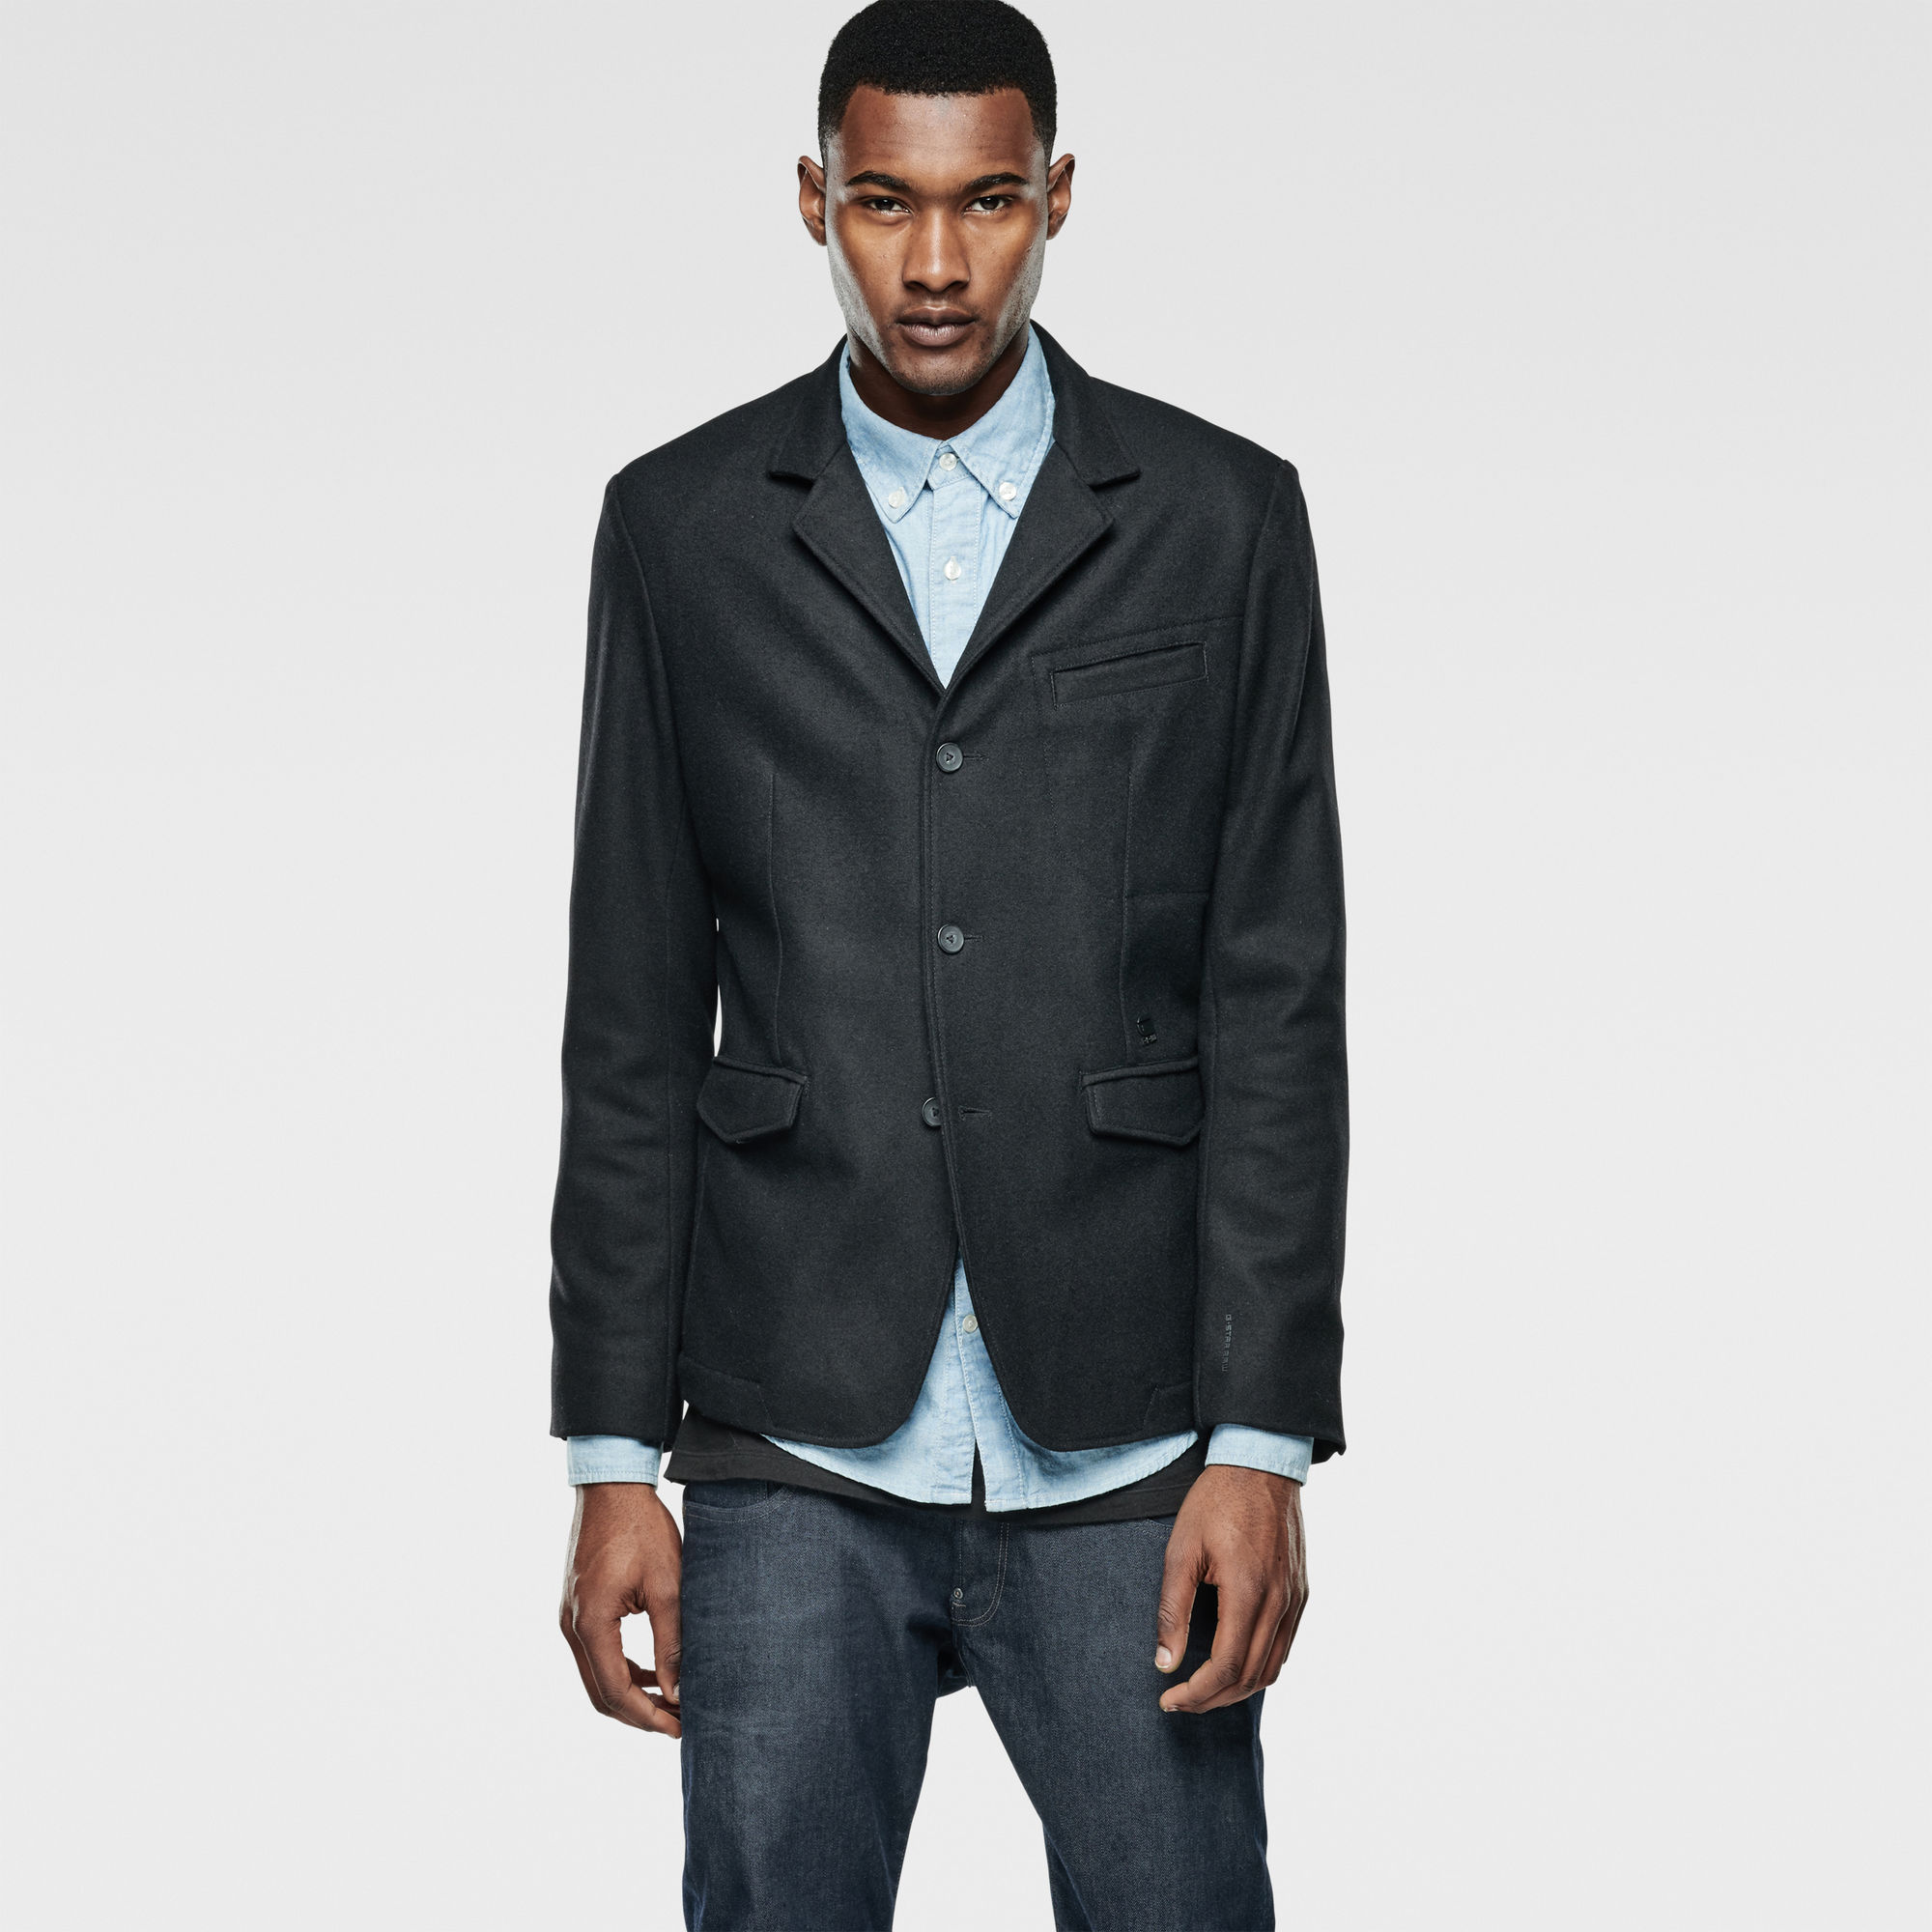 Image of G Star Raw Admiral Blazer